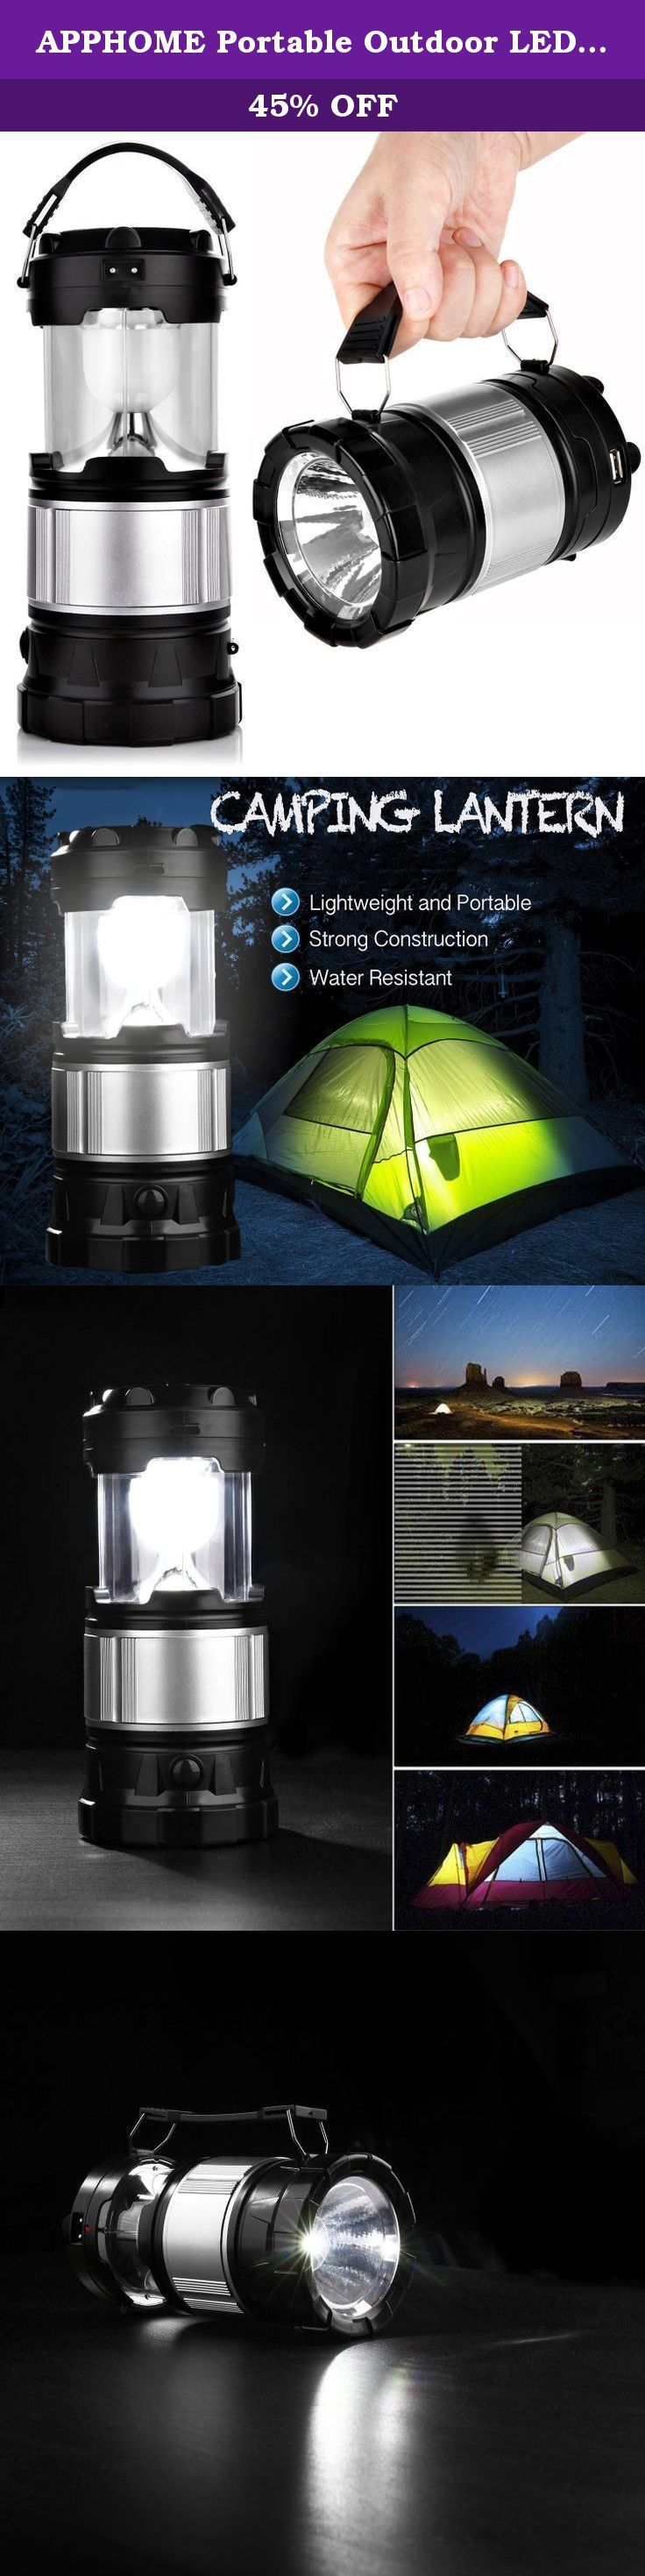 APPHOME Portable Outdoor LED Camping Lantern Solar Lamp Lights Handheld Flashlights with Rechargeable Battery for Backpacking, Hiking, Fishing, Emergencies Outages(Black,Collapsible). This APPHOME Solar Lantern is an extremely versatile source of light whether around the house, in the backyard, or on a camping expedition. We just updated the packing box, please do not worried about its quality. Travel Farther Lighter This compact solar lantern is designed for outdoor enthusiasts. The...